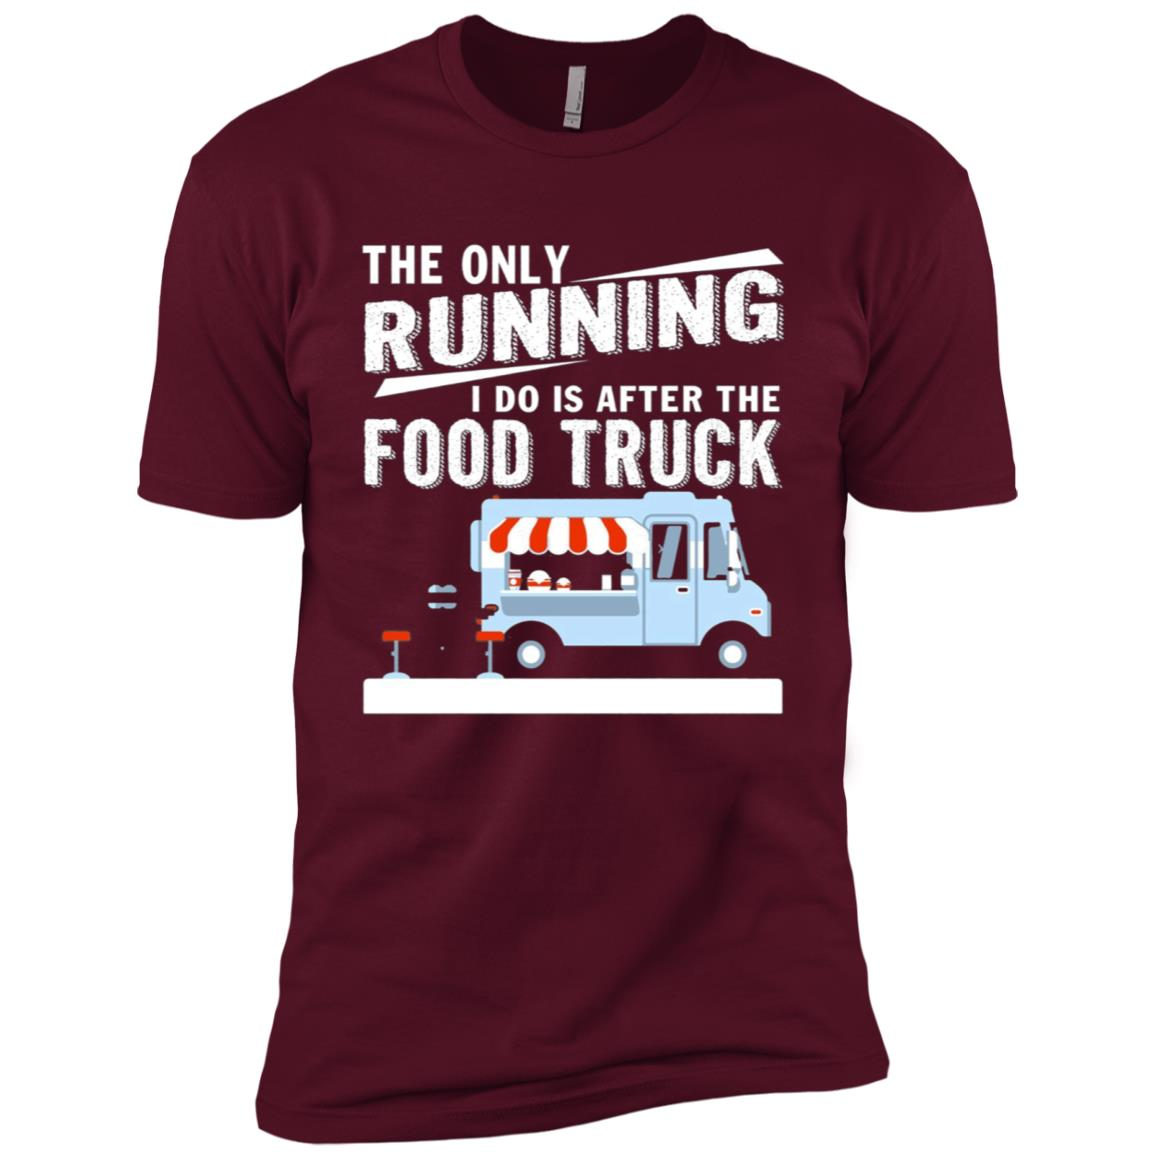 The Only Running I Do Is After The Food Truck Men Short Sleeve T-Shirt